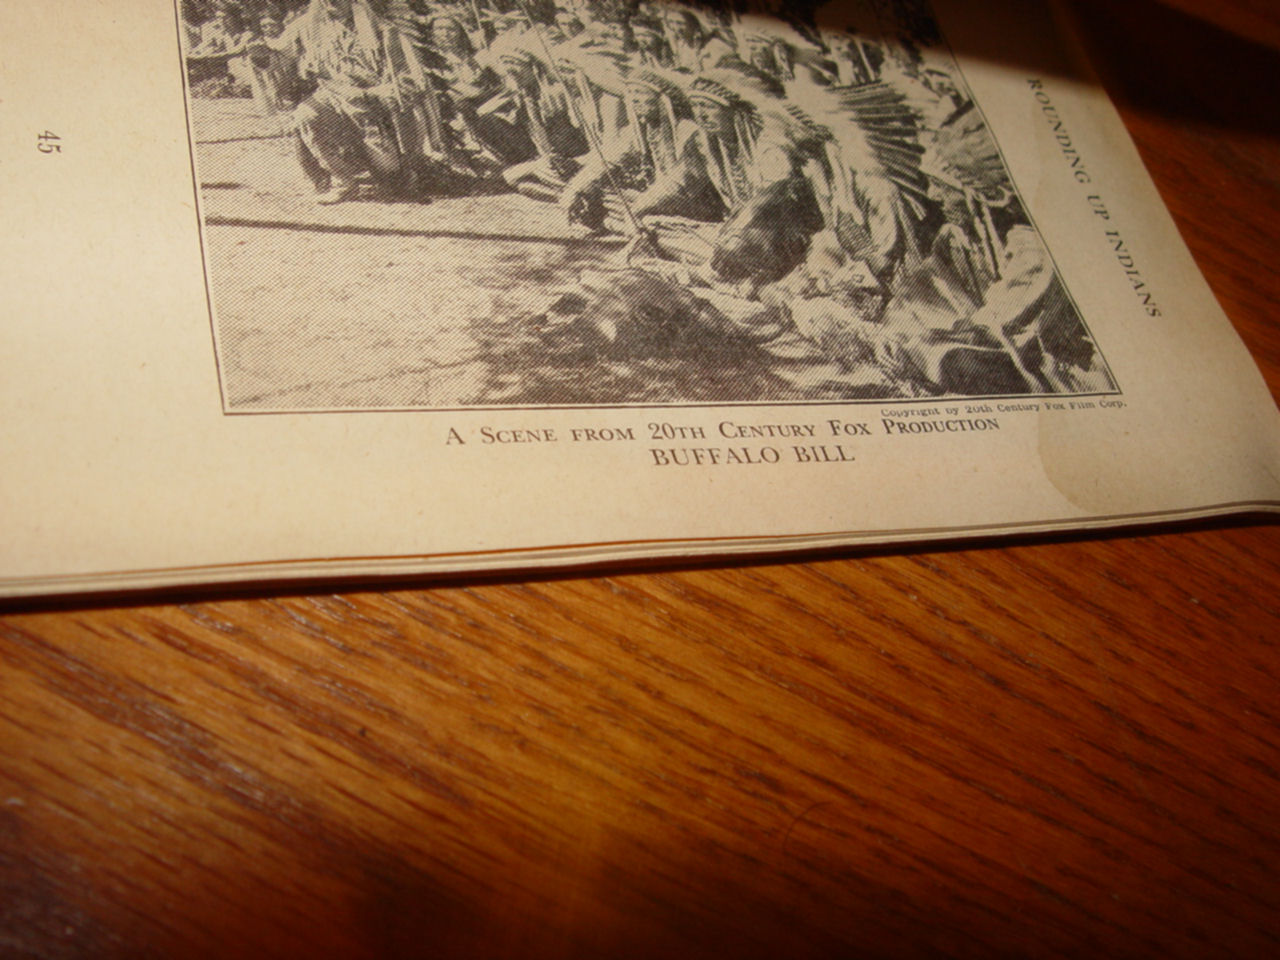 Adventures                                         & Life of Buffalo Bill by                                         COL WILLIAM F CODY (1904) Harper                                         & Brothers